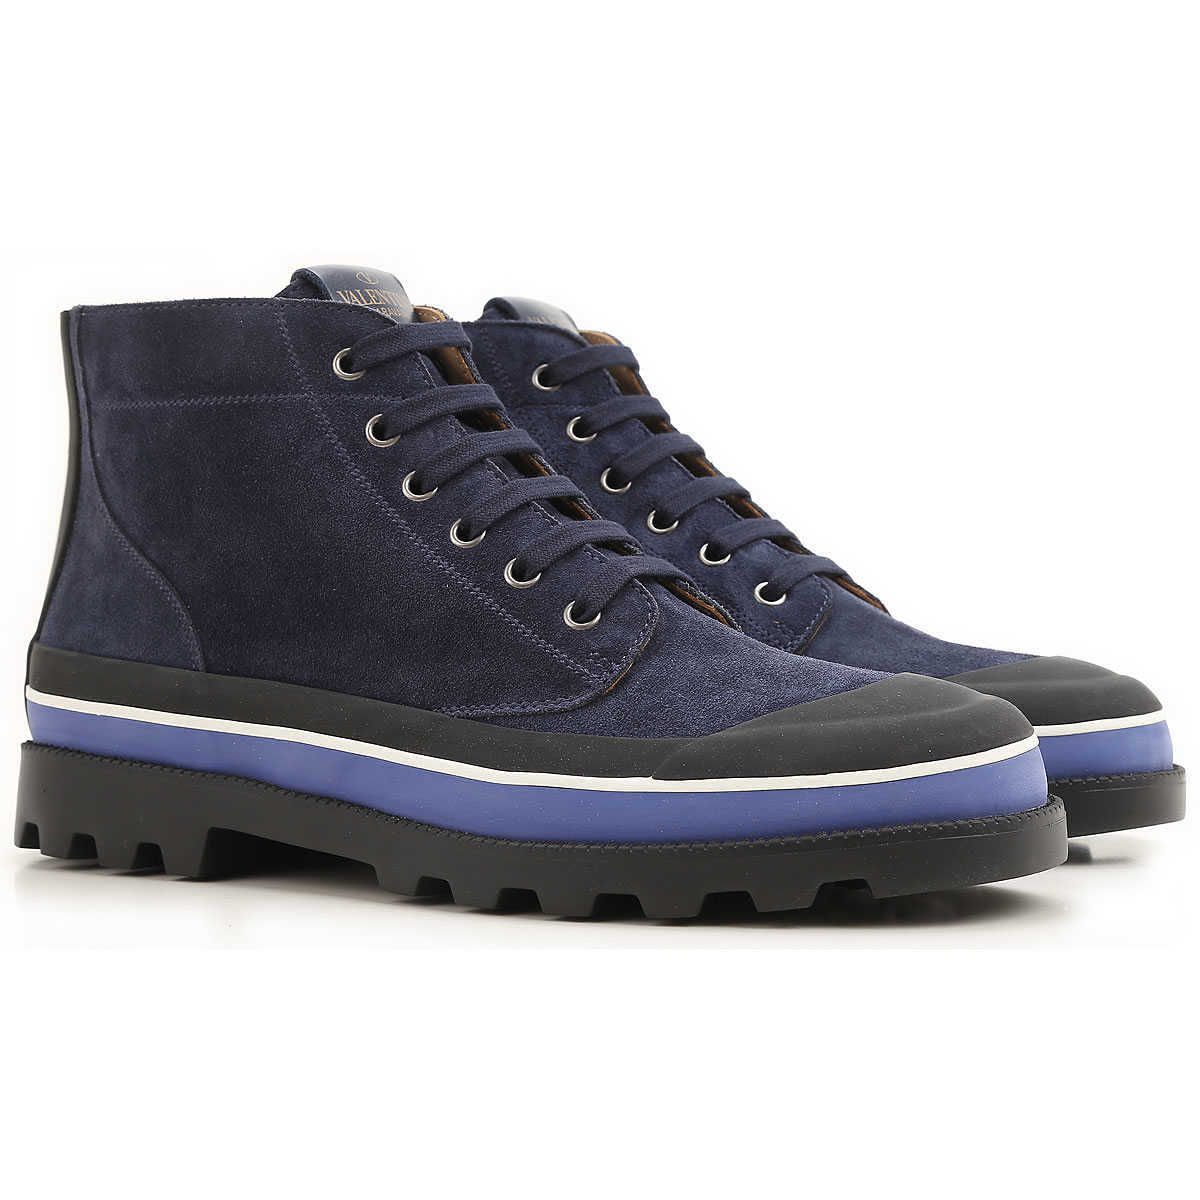 Valentino Garavani Boots for Men Booties On Sale in Outlet Canada - GOOFASH - Mens BOOTS